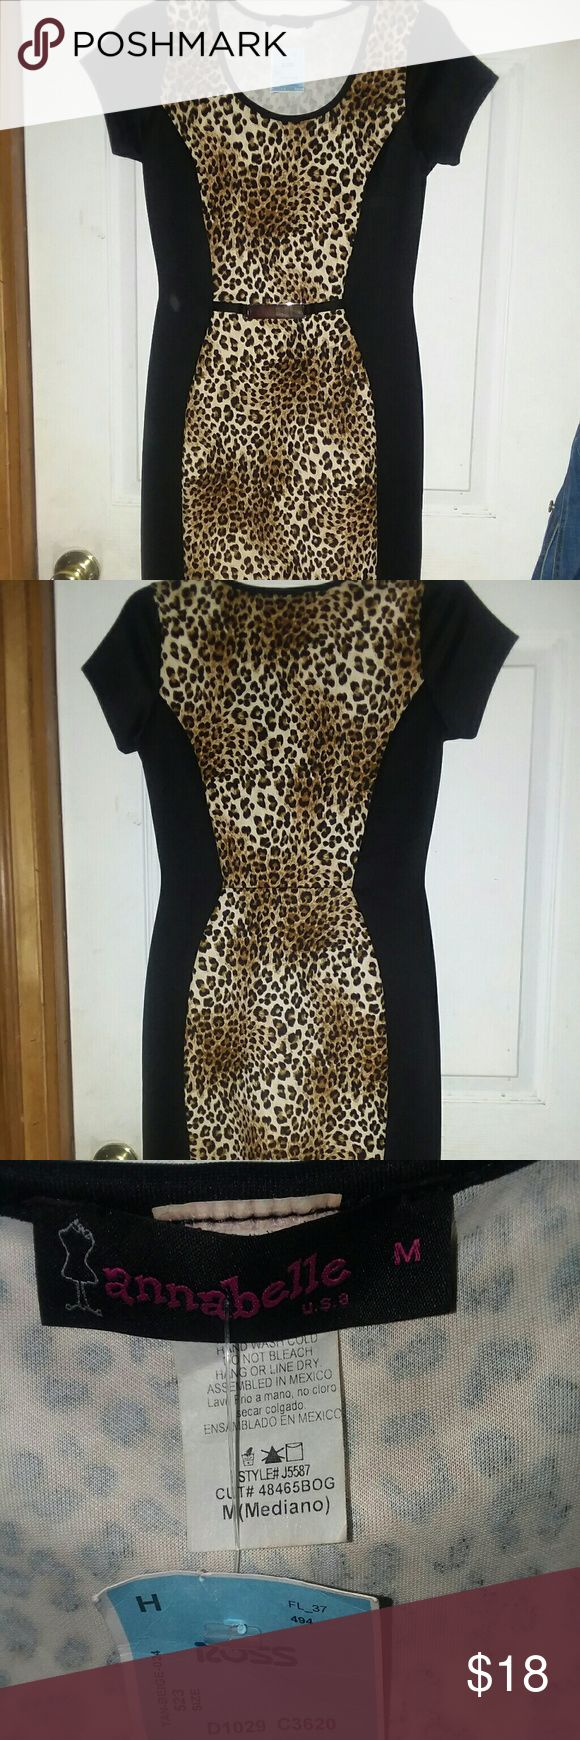 ANNABELLE animal print body con ANNABELLE animal print body con, brand new,never used with tag ,size M fits perfectly Annabelle Dresses Midi